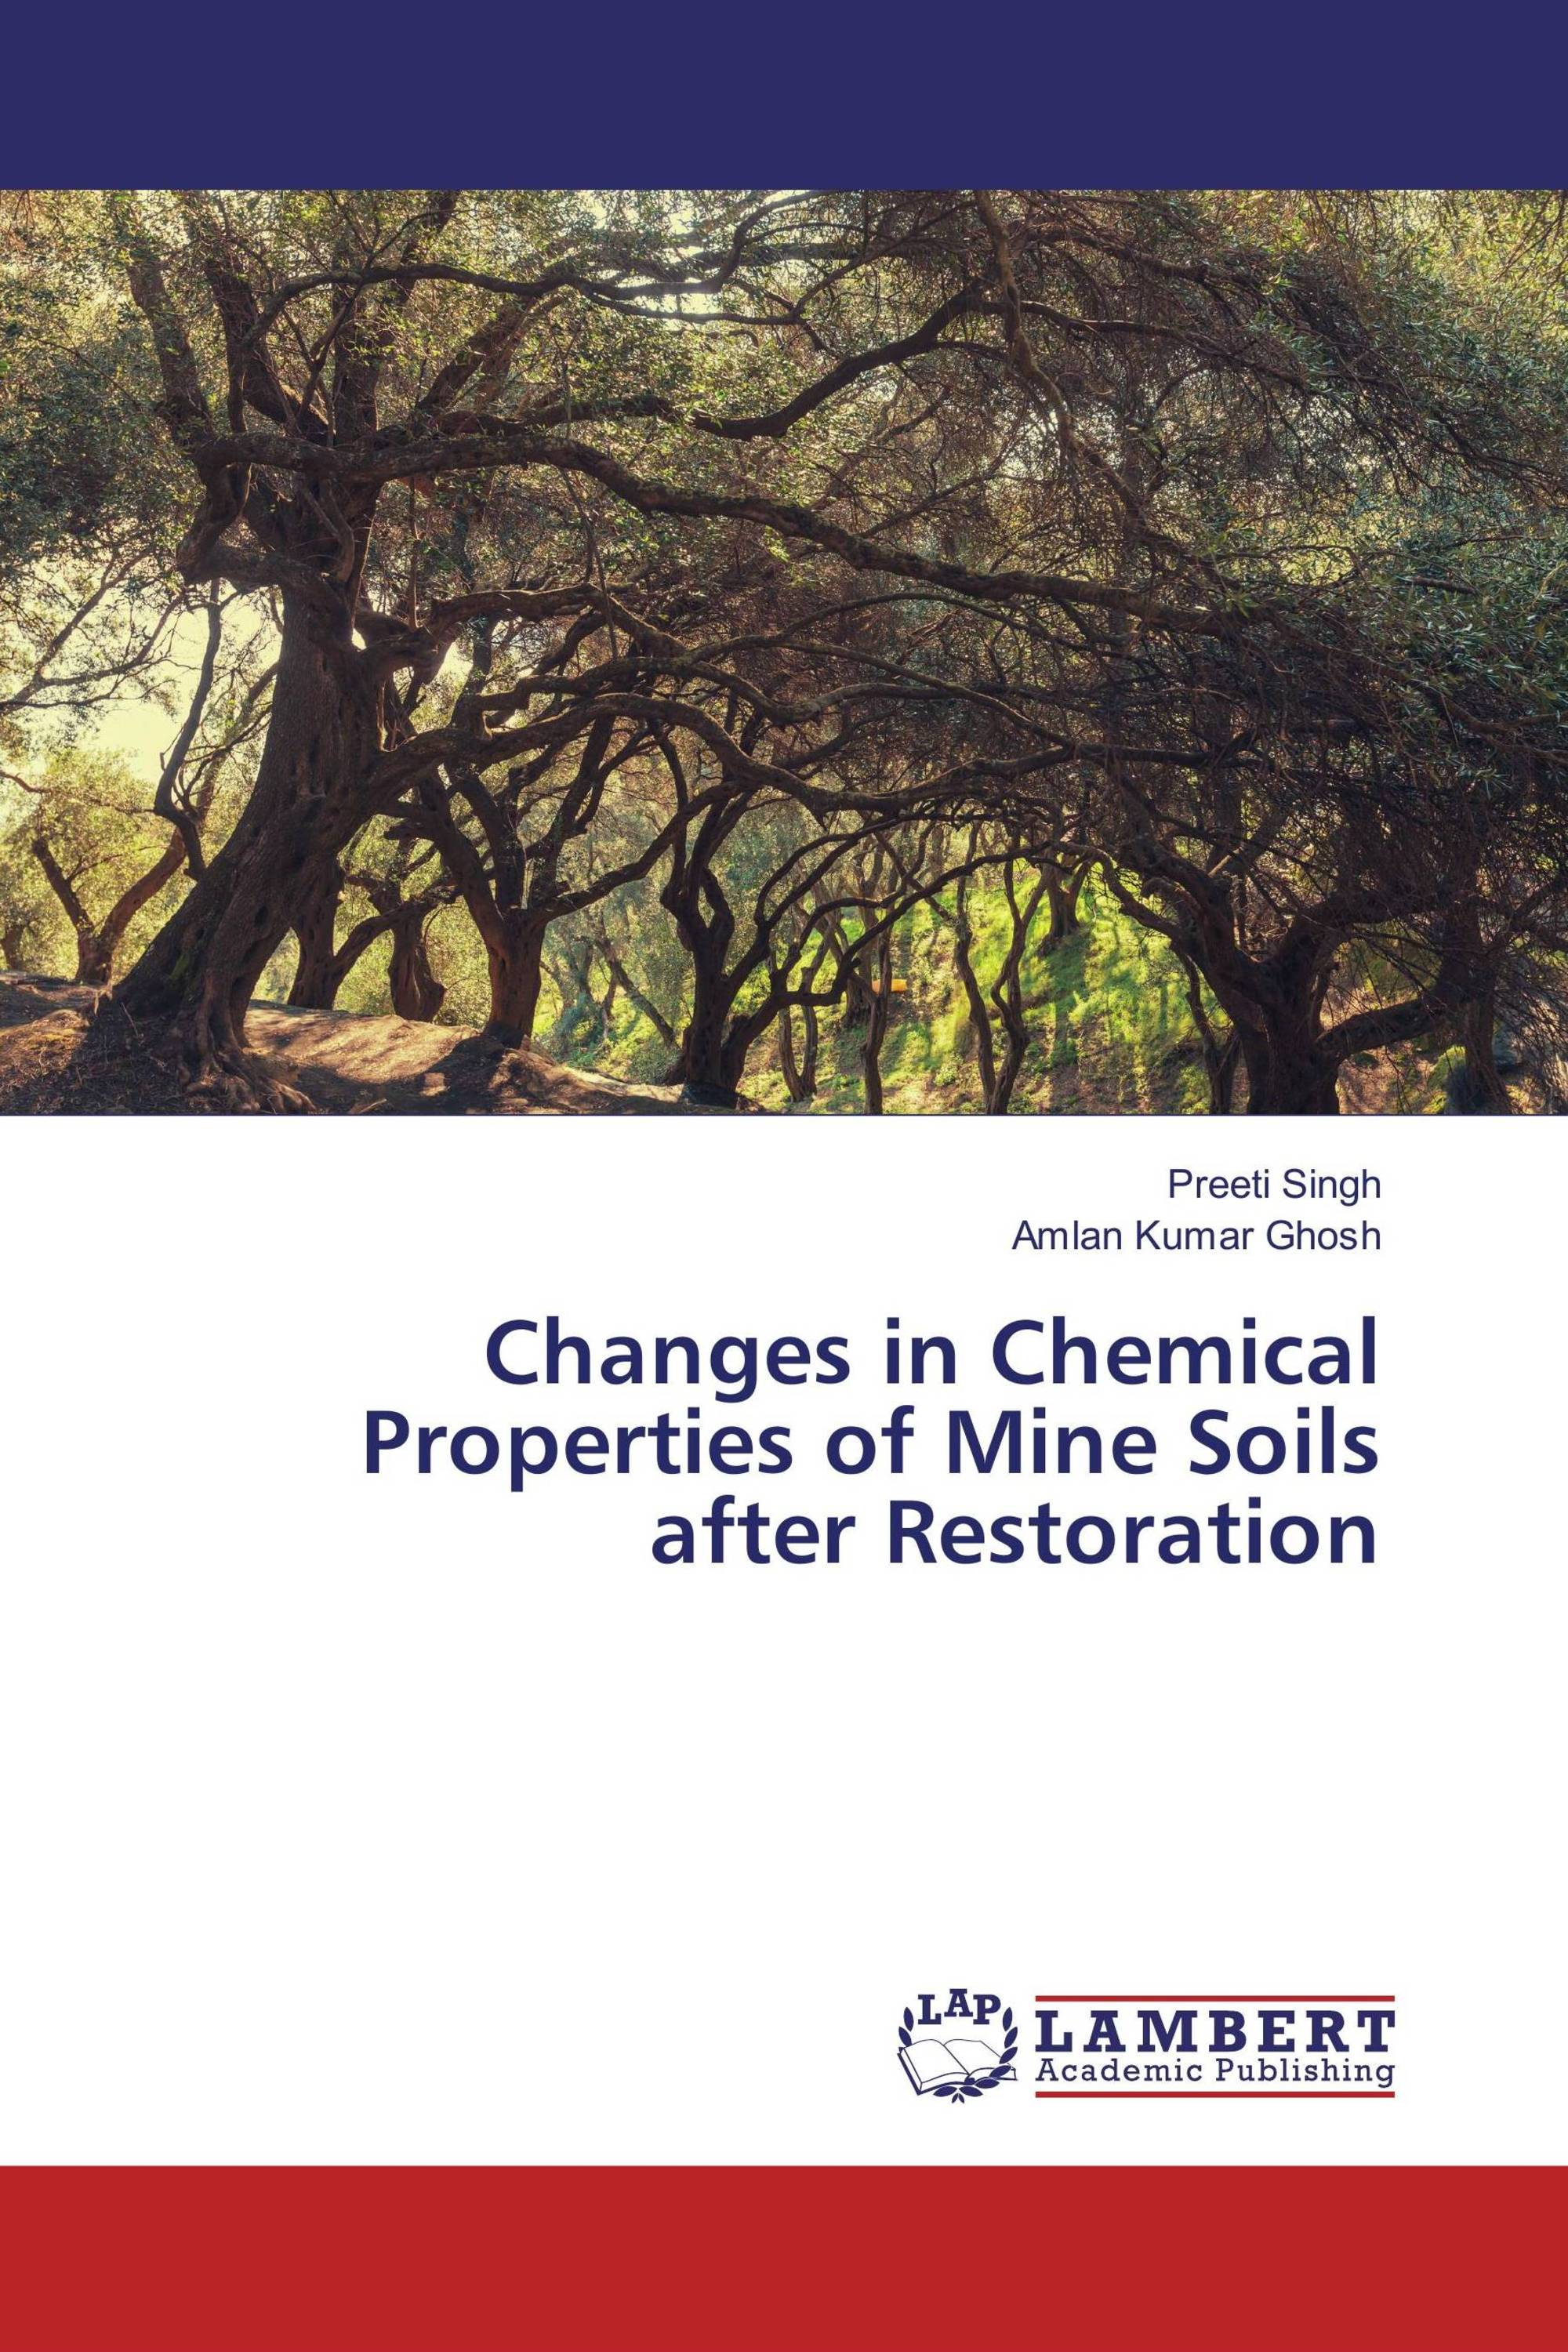 Changes in Chemical Properties of Mine Soils after Restoration